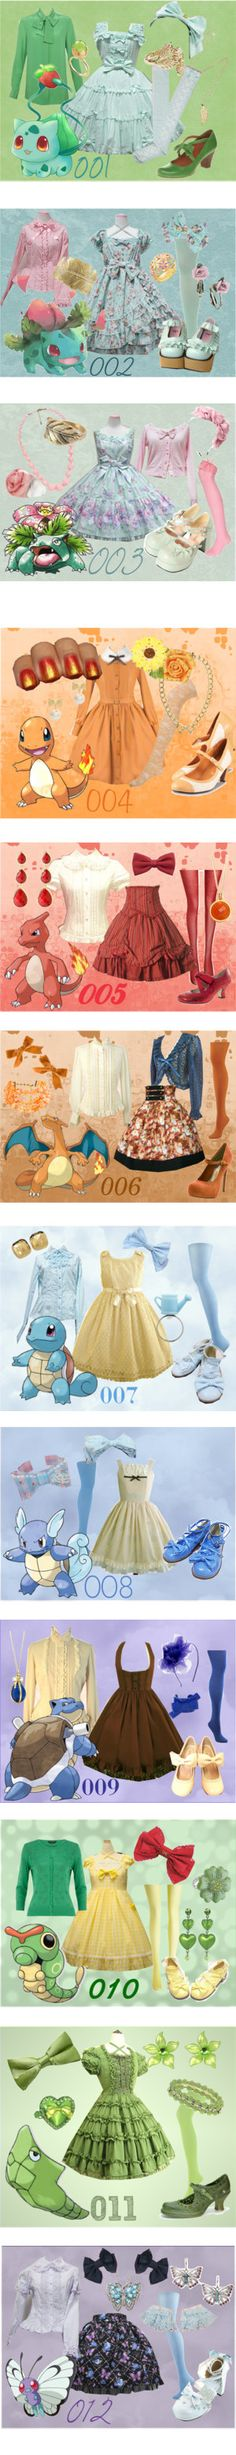 150 Pokemon Lolitas by meiki on Polyvore featuring Chloé, Jennifer Meyer Jewelry, Reiss, Baccarat, lolita fashion, bulbasaur, pokemon, lolita, We Love Colors and Coach